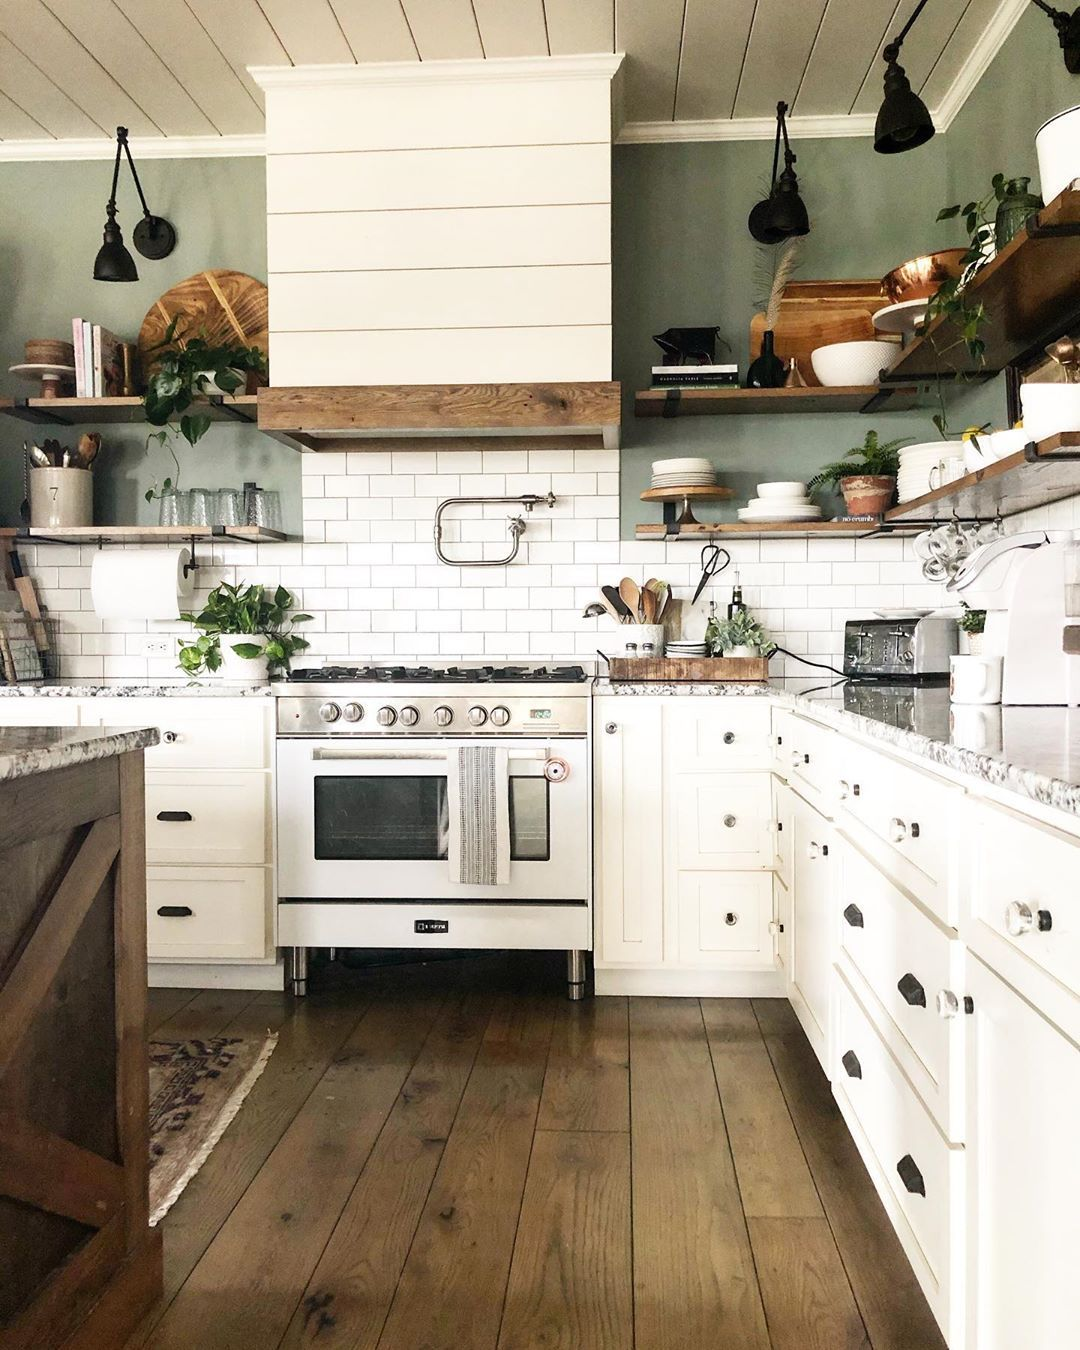 pin by kim parsons on kitchen time in 2020 with images modern farmhouse kitchens farm on kitchen island ideas modern farmhouse id=42754